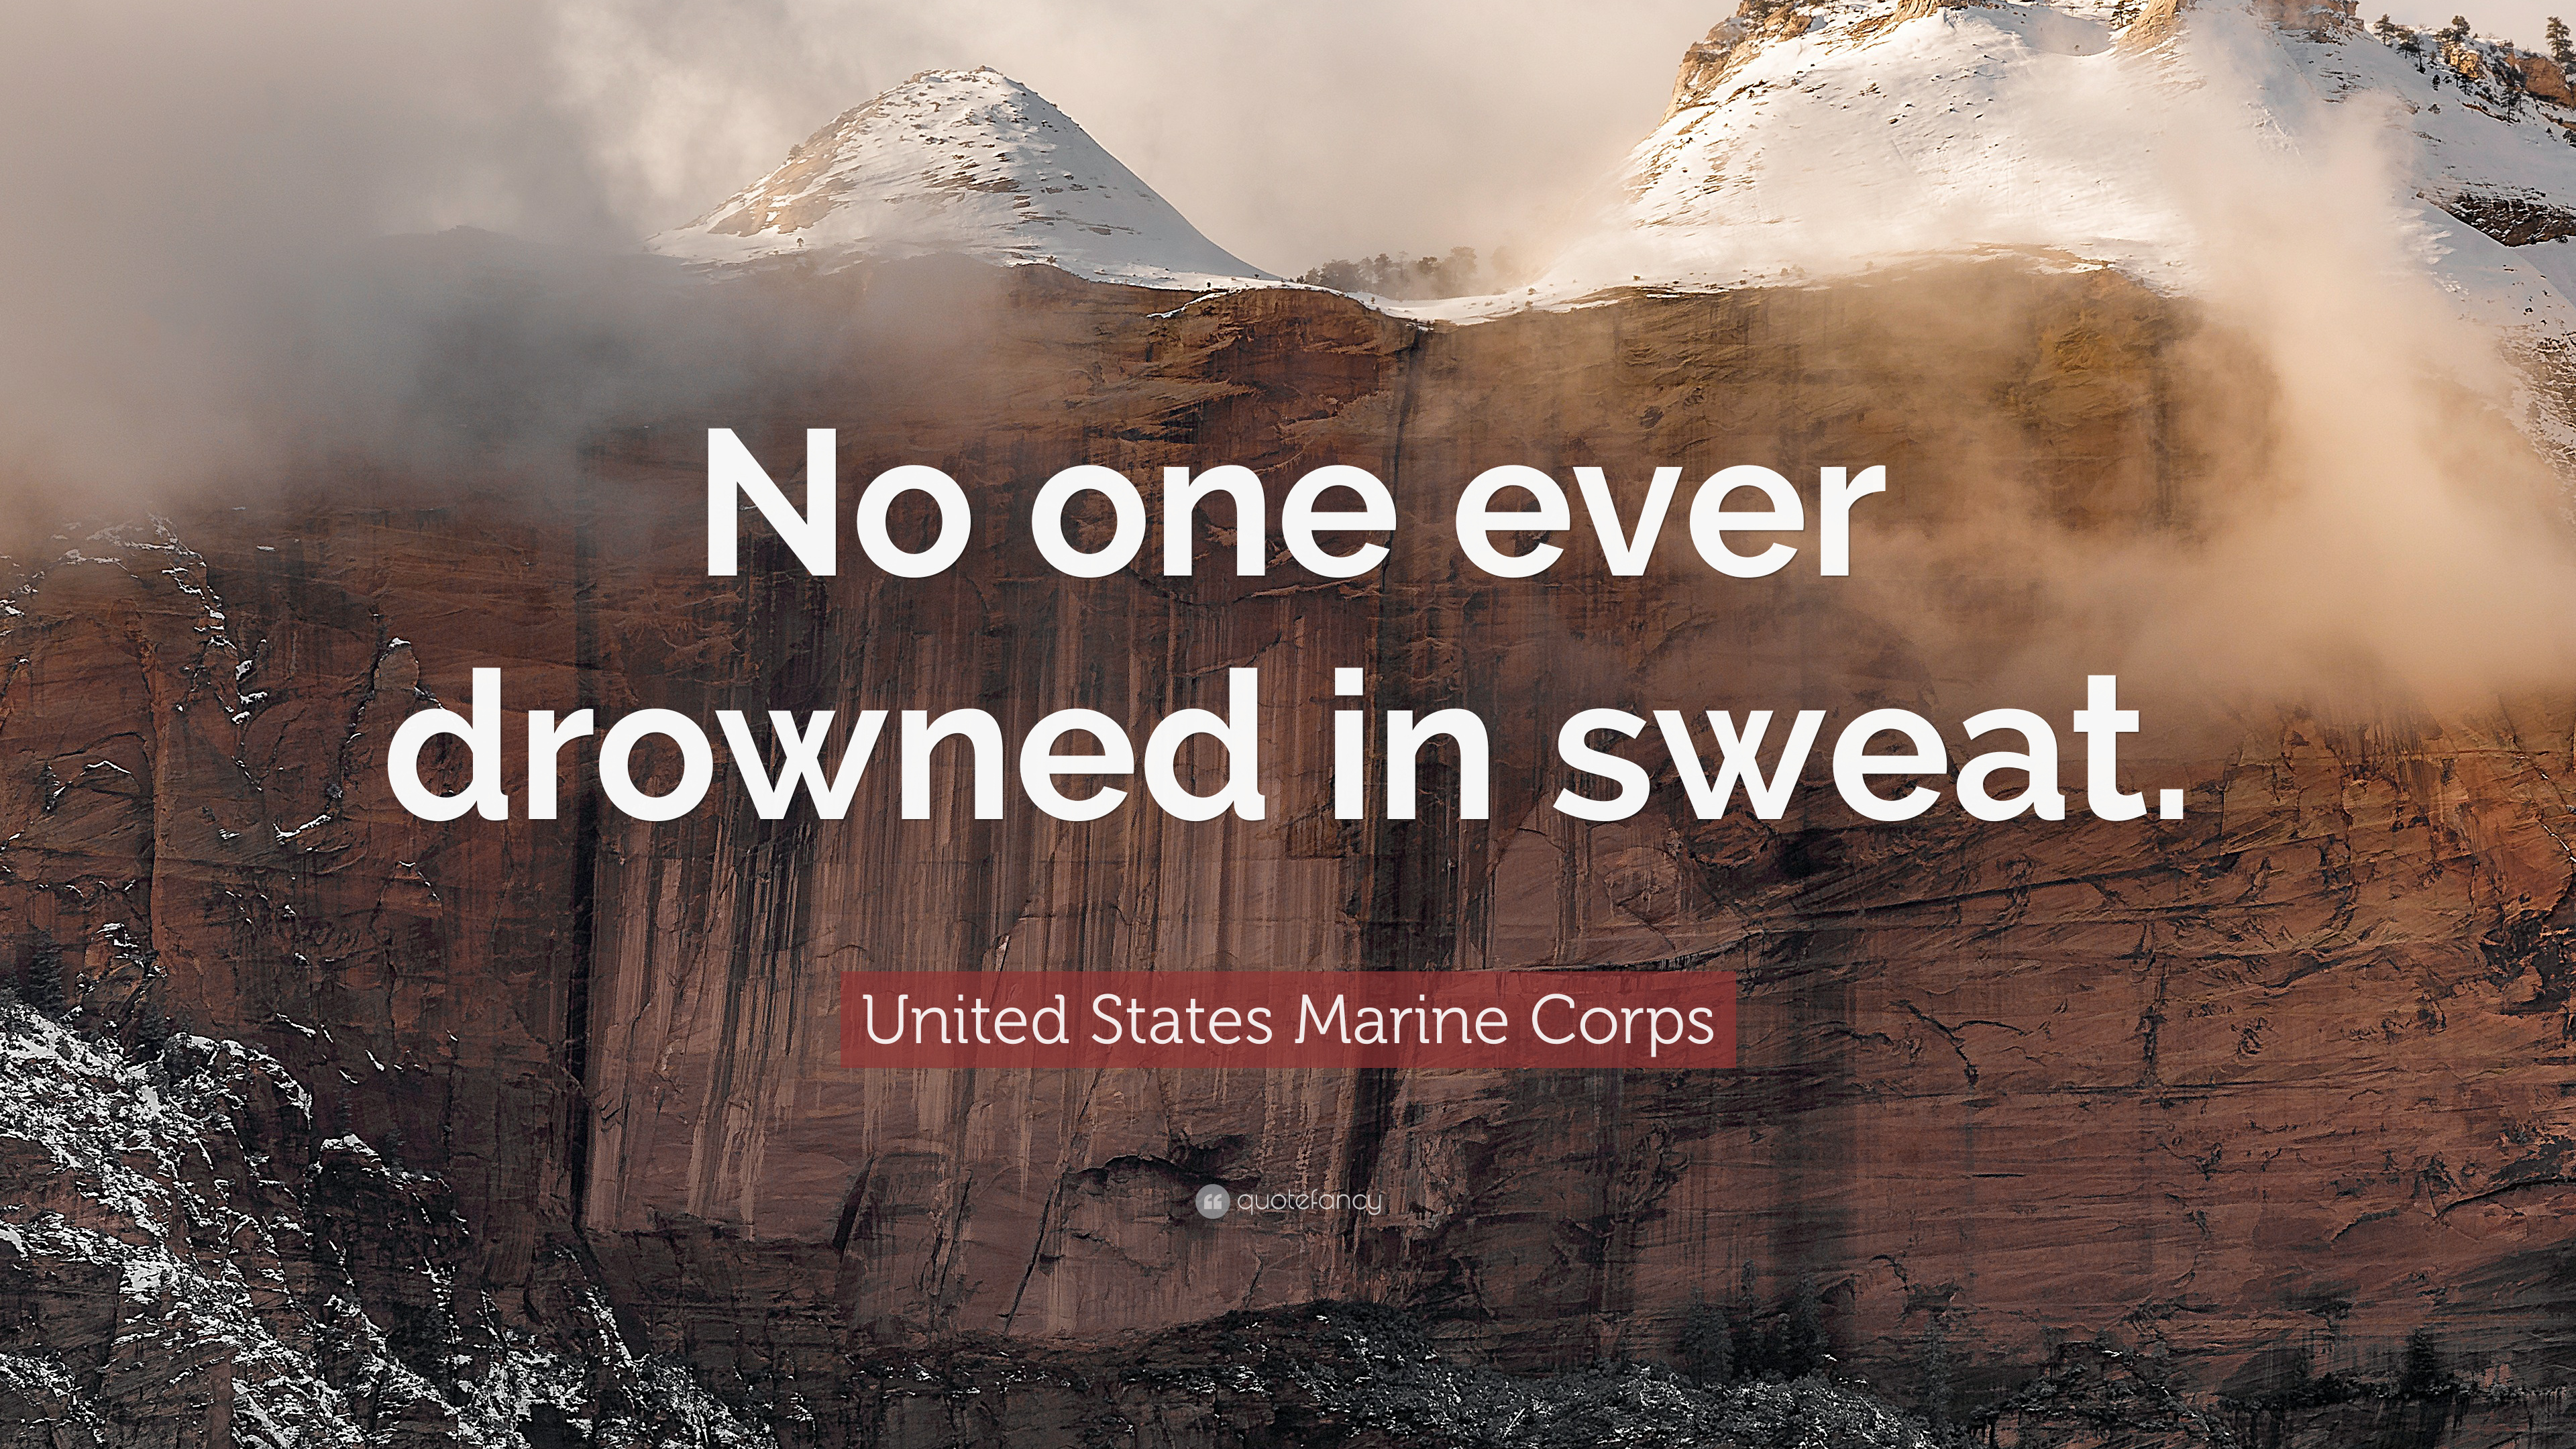 Marine Corps Quotes | United States Marine Corps Quotes 2 Wallpapers Quotefancy